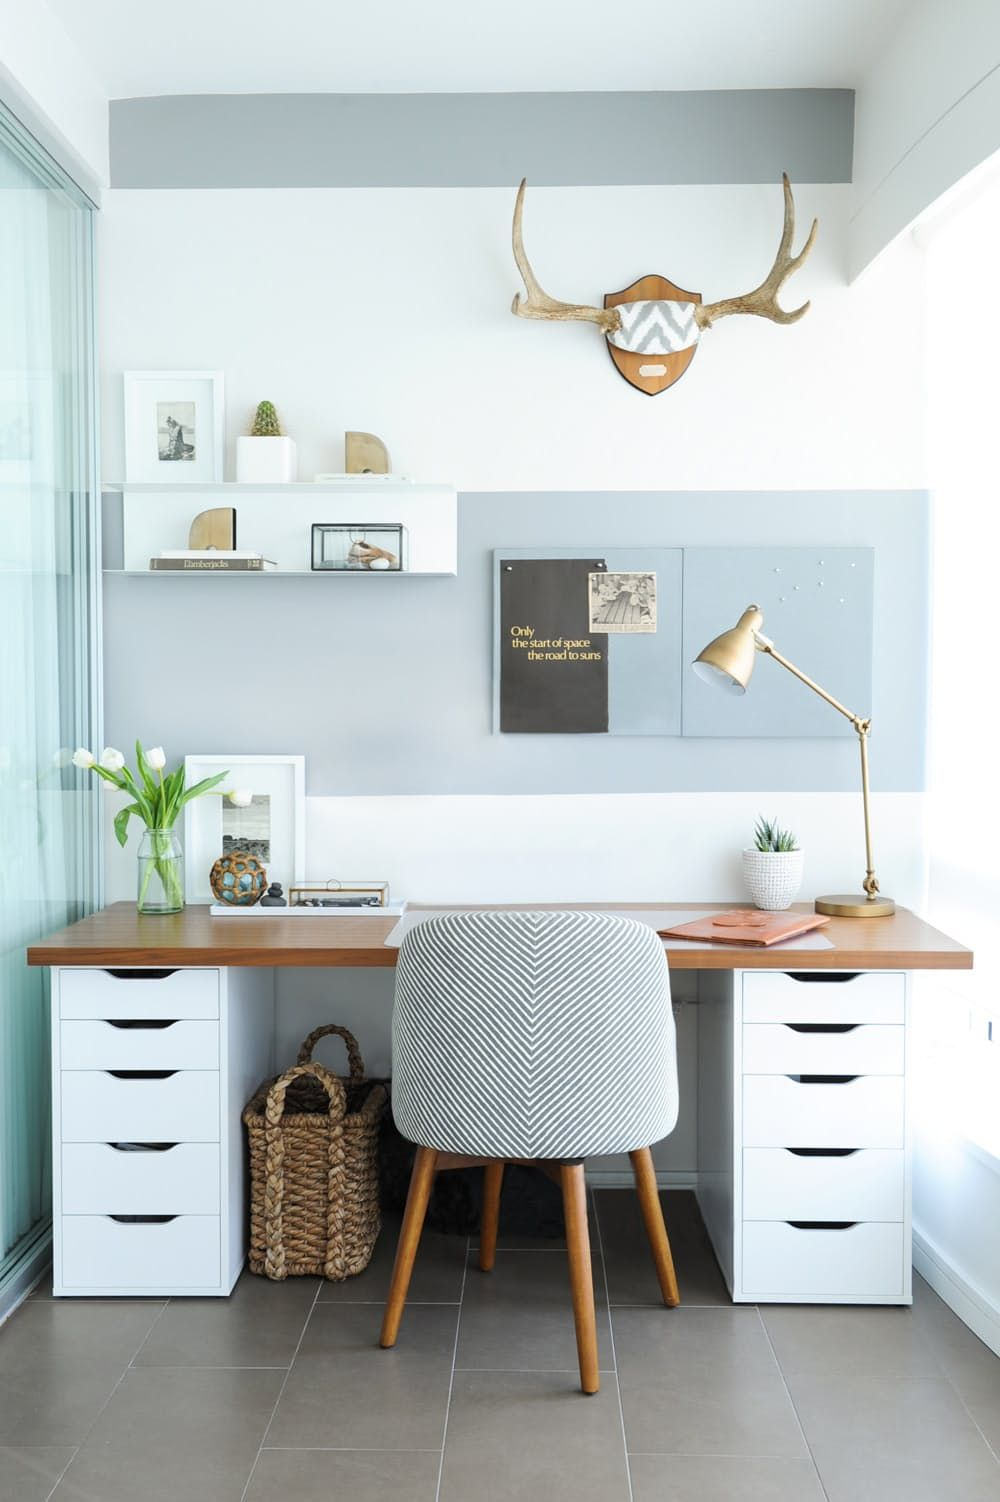 DIY Desks You Can Make In Less Than a Minute (Seriously